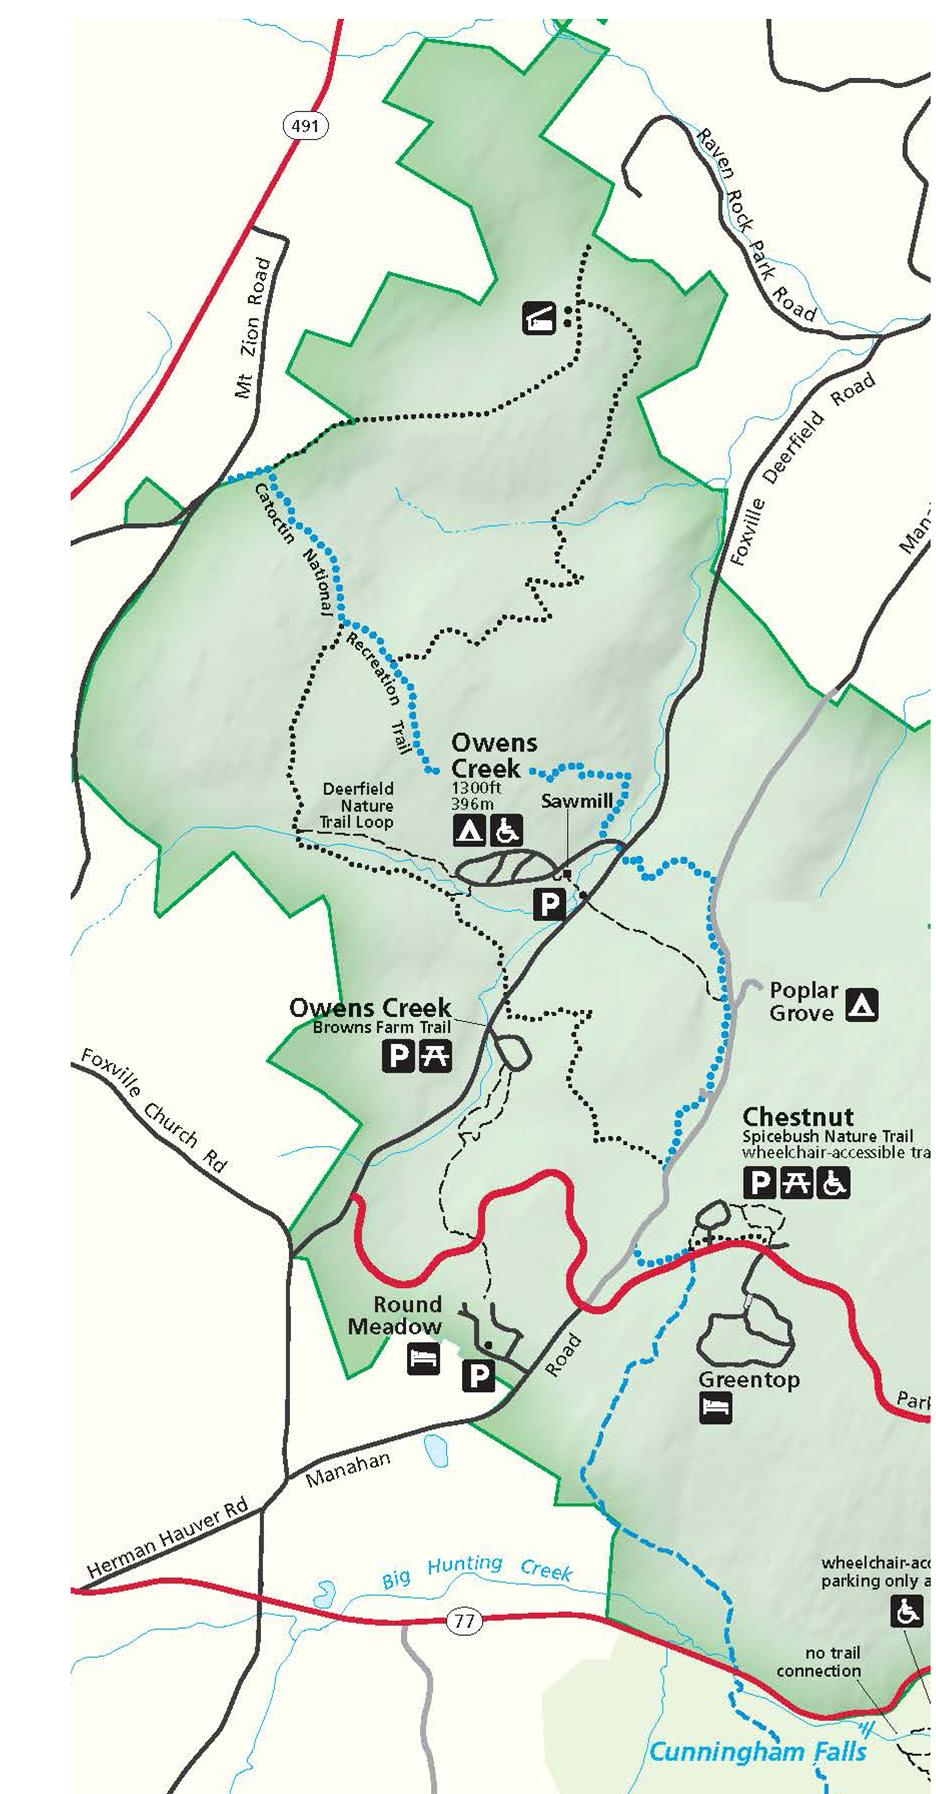 Image of Map of West Side Trails  - Click to View West Side Trails Page